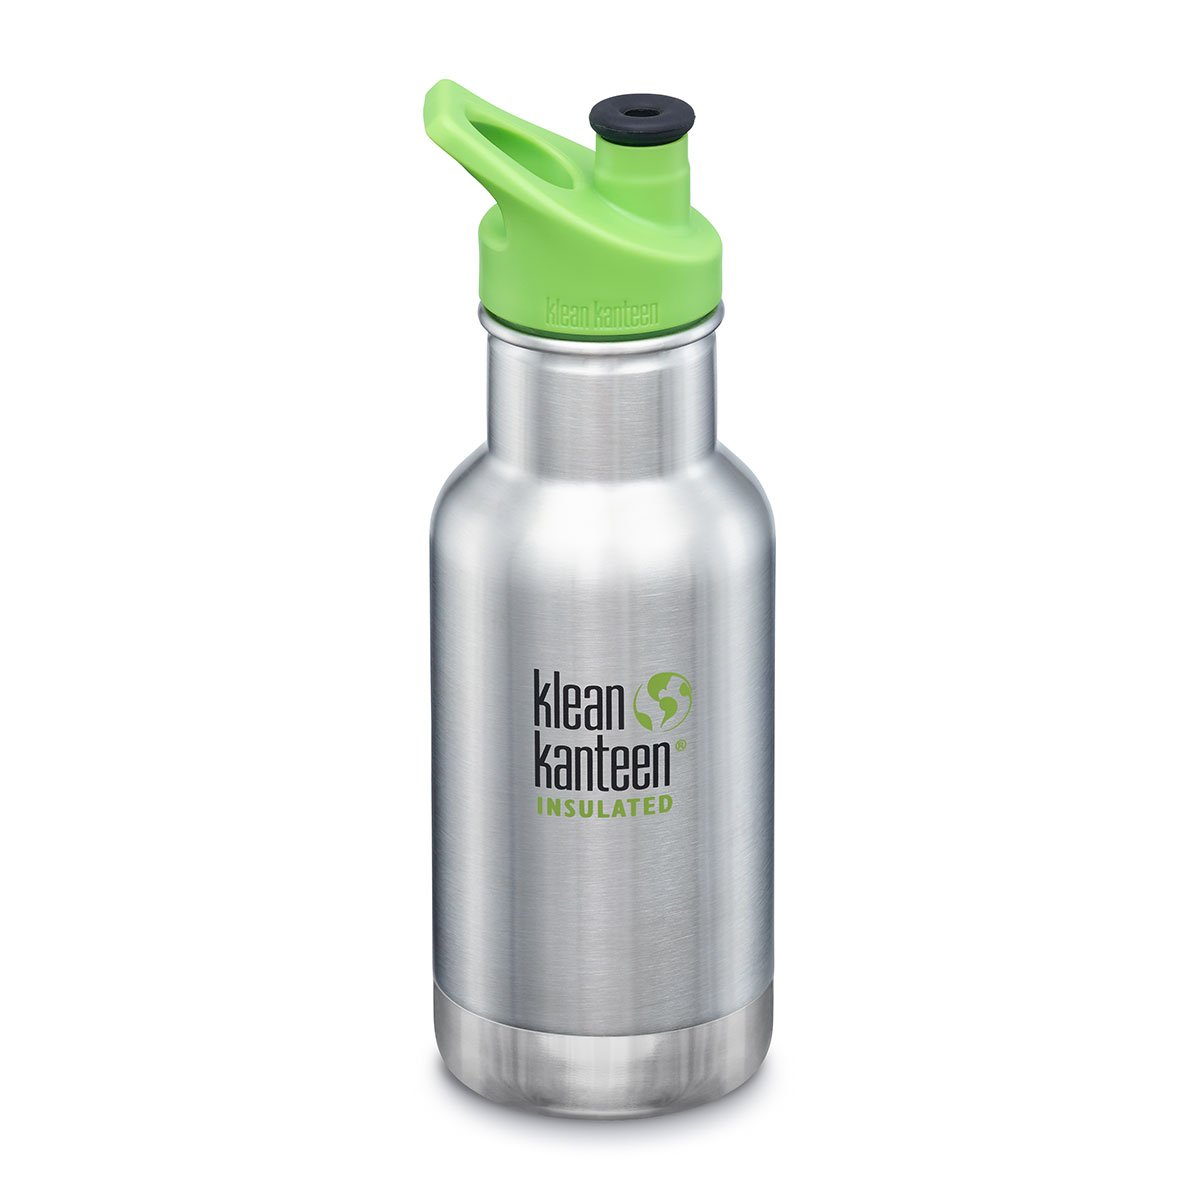 Klean Kanteen Kids Insulated Drink Bottle 12oz Klean Kanteen Water Bottles Brushed Stainless at Little Earth Nest Eco Shop